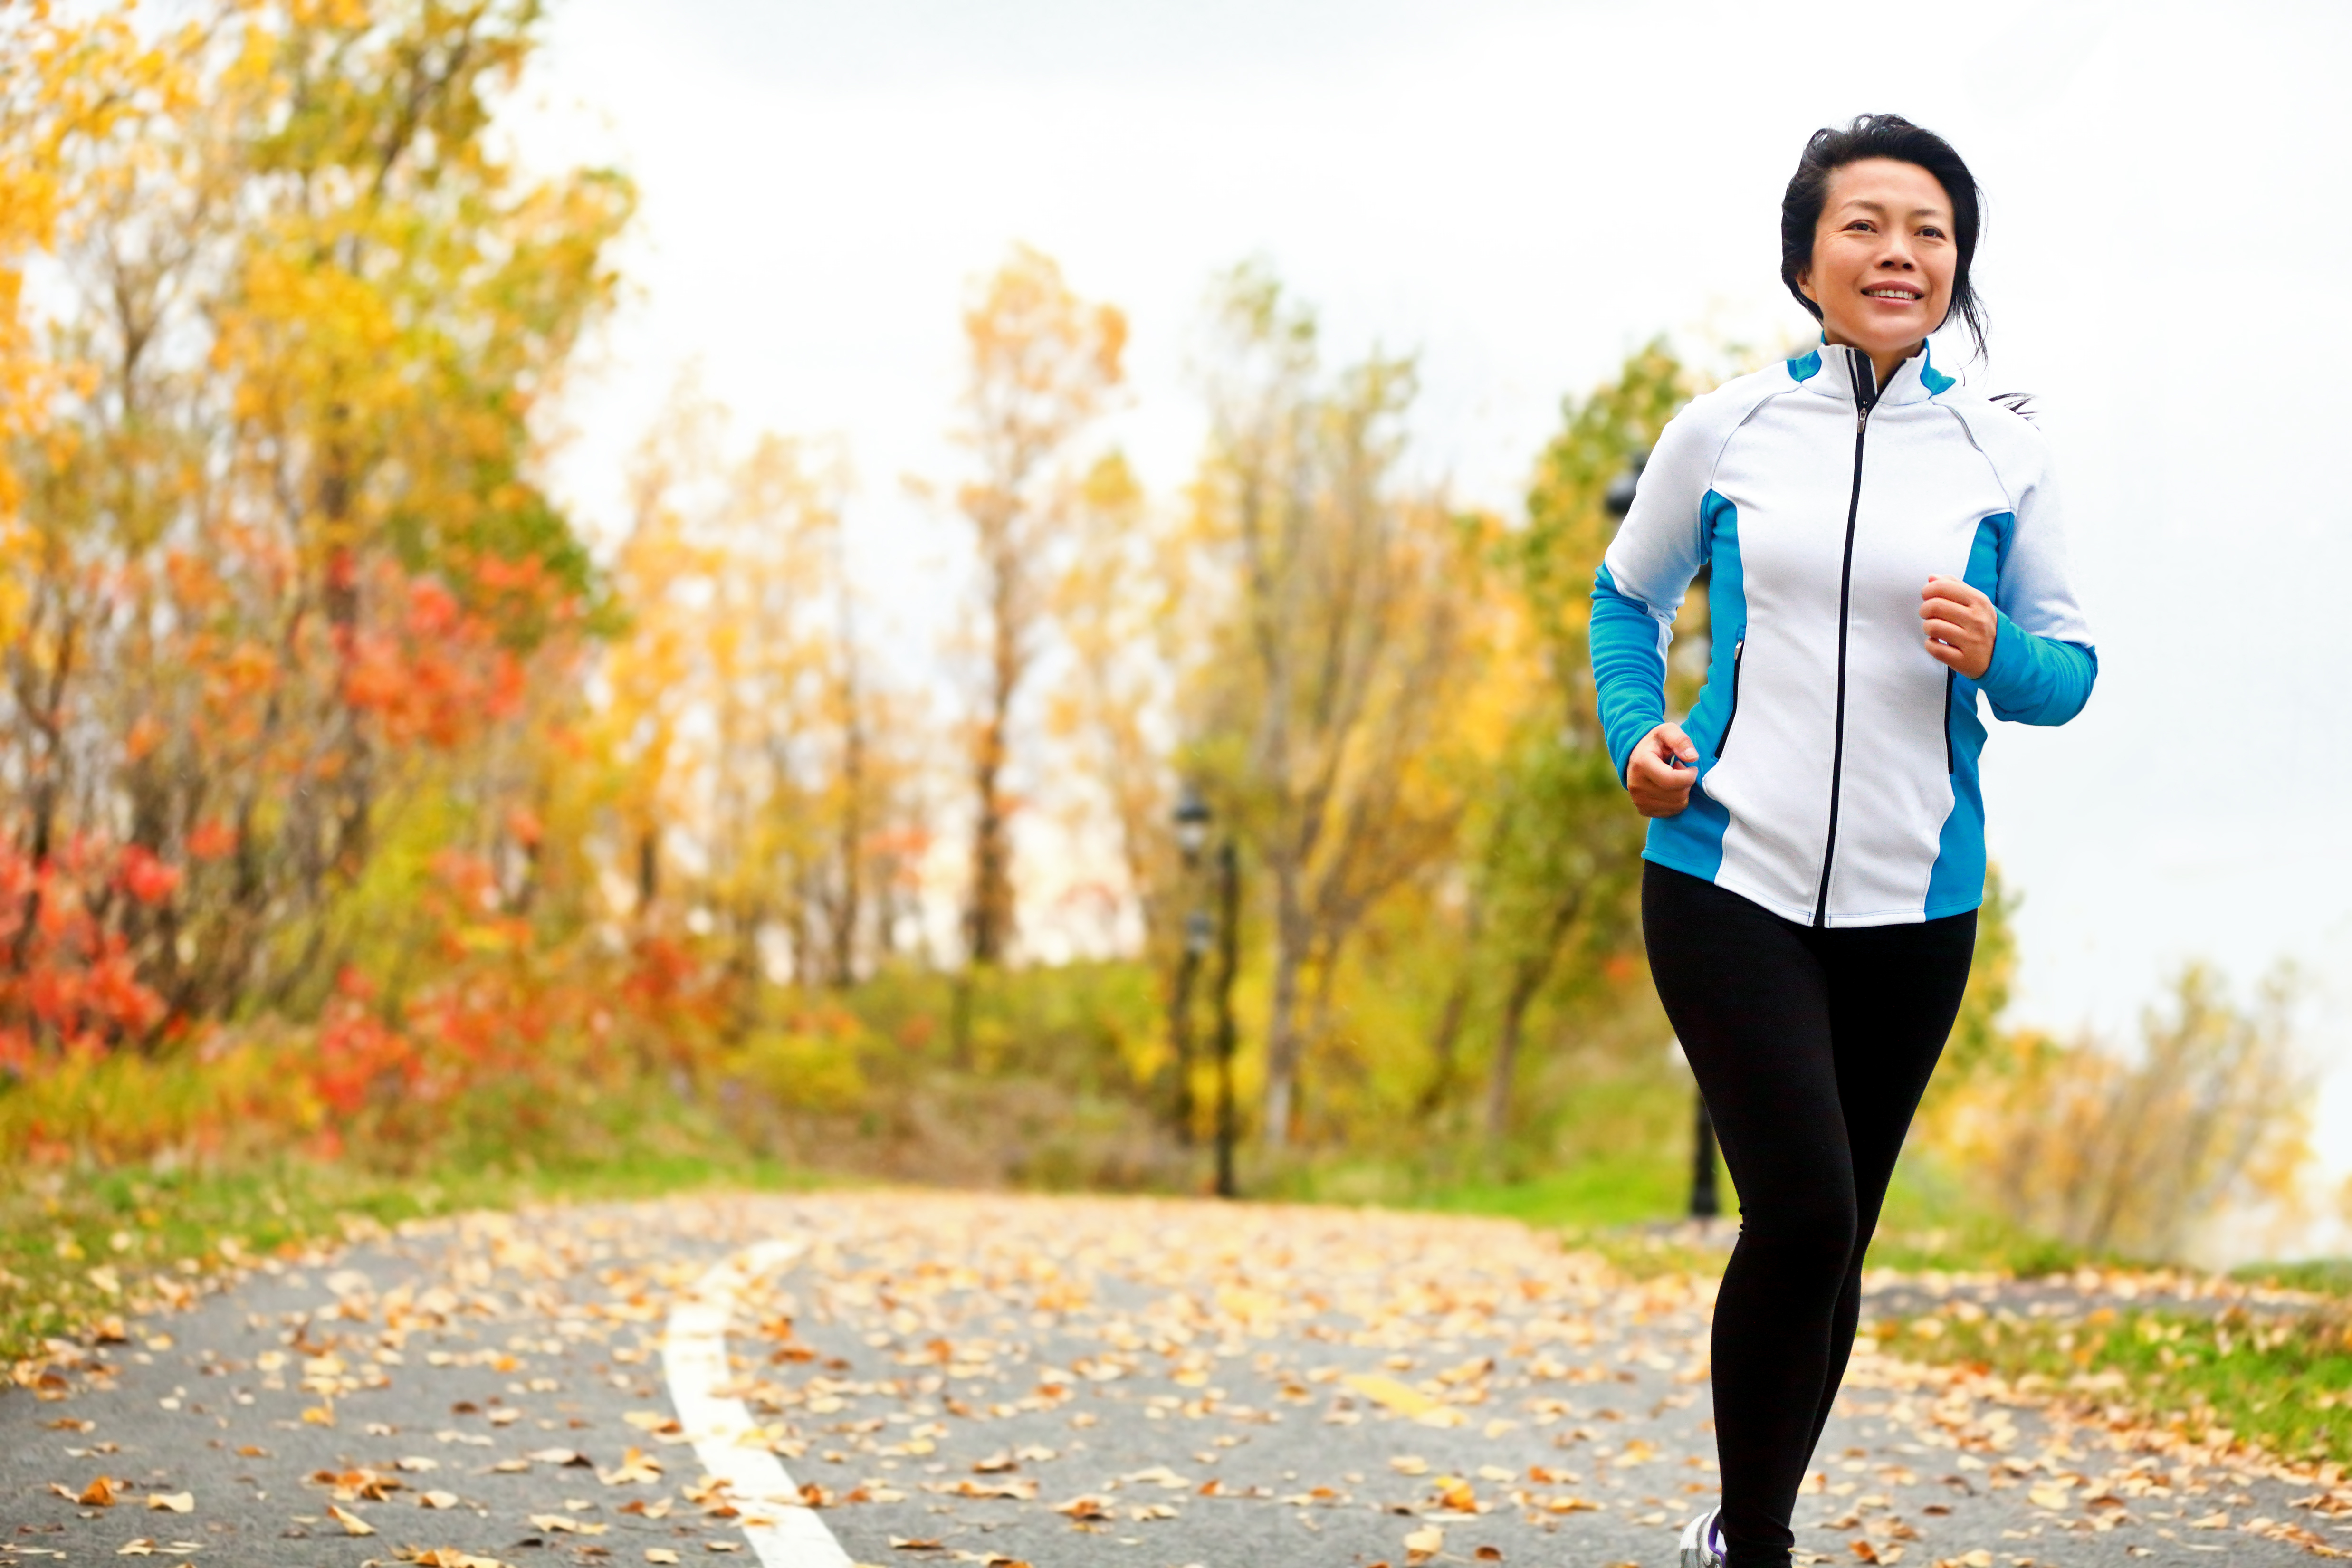 a healthy Asian woman exercising and running on street covered in fallen autumn leaves